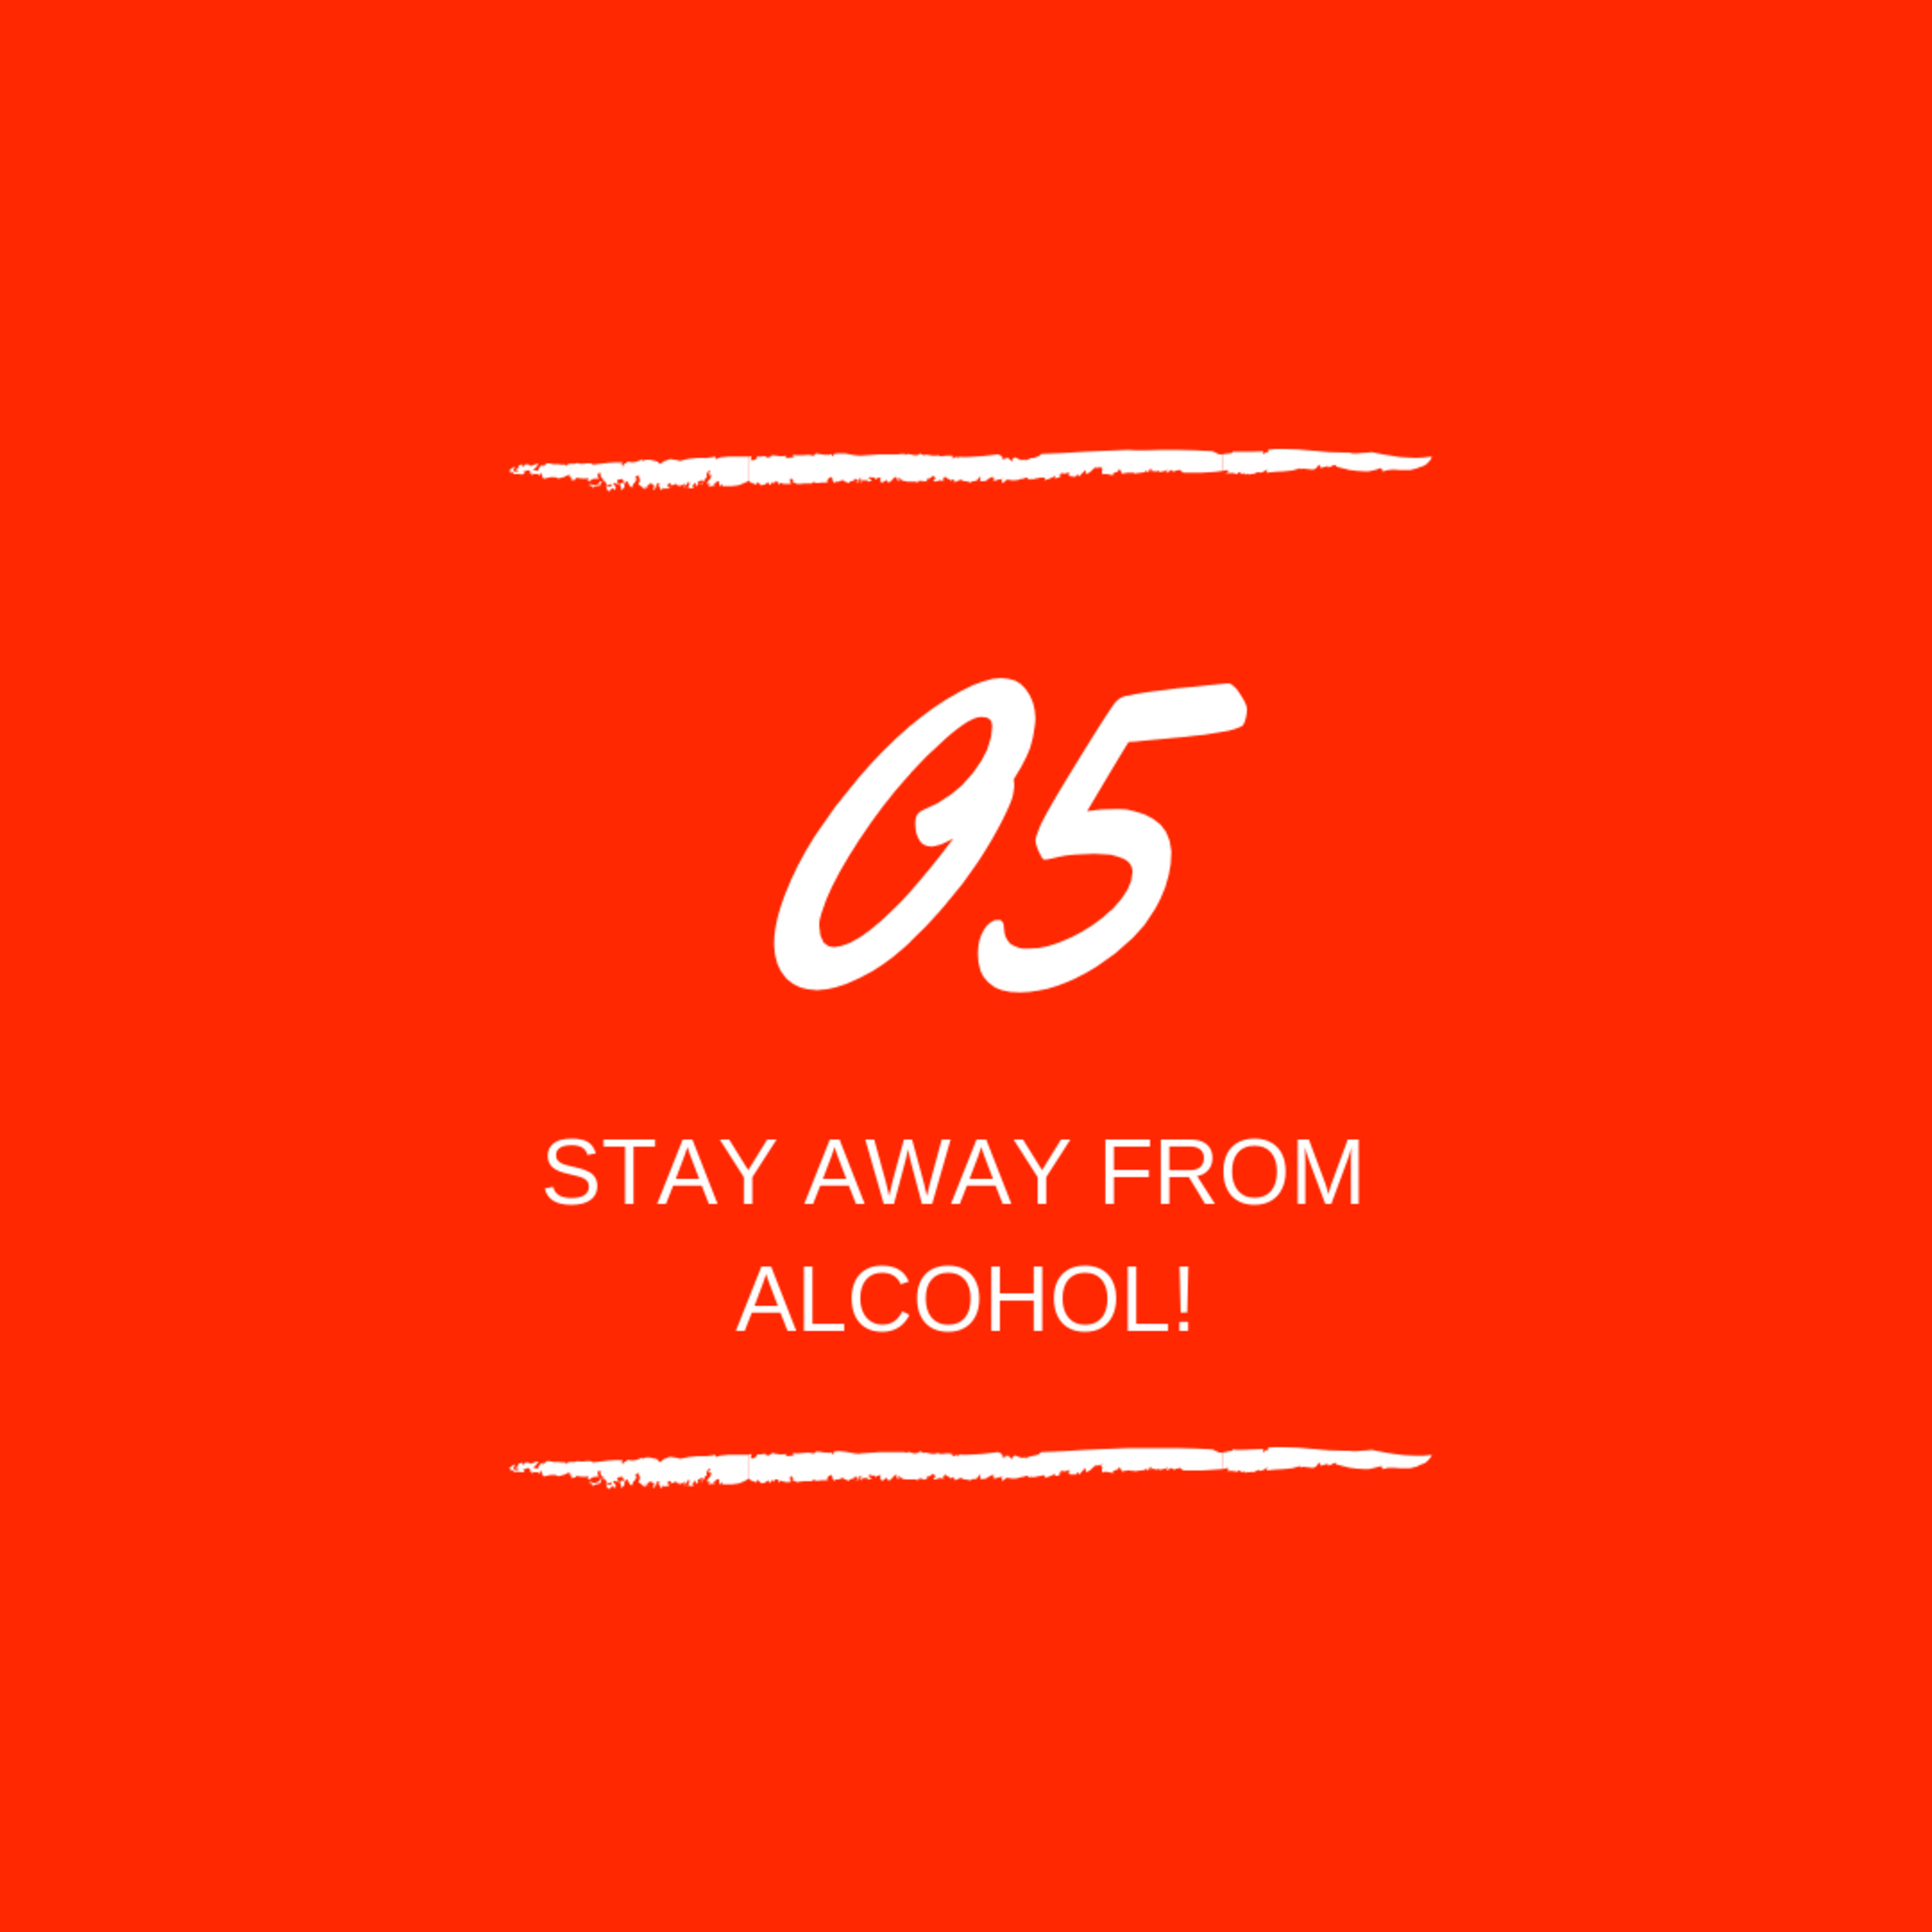 Day 05 : 🚫🍹 Stay away from Alcohol!